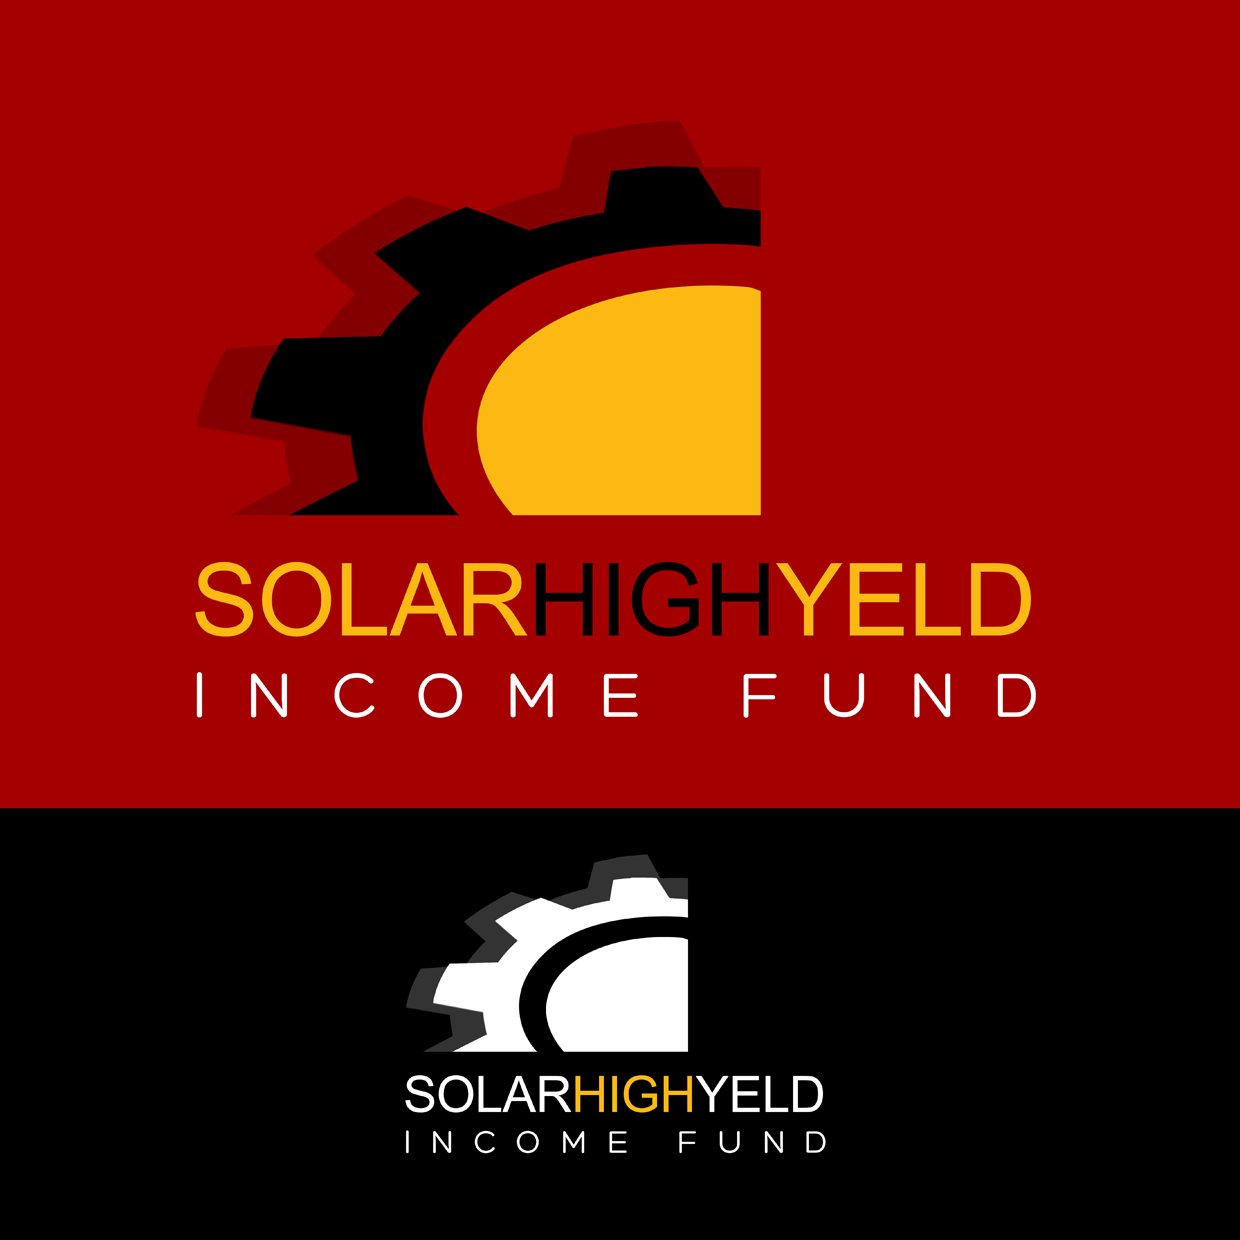 Logo Design by Carolina - Entry No. 48 in the Logo Design Contest Logo Design Needed for Exciting New Company Solar High Yield Income Fund.